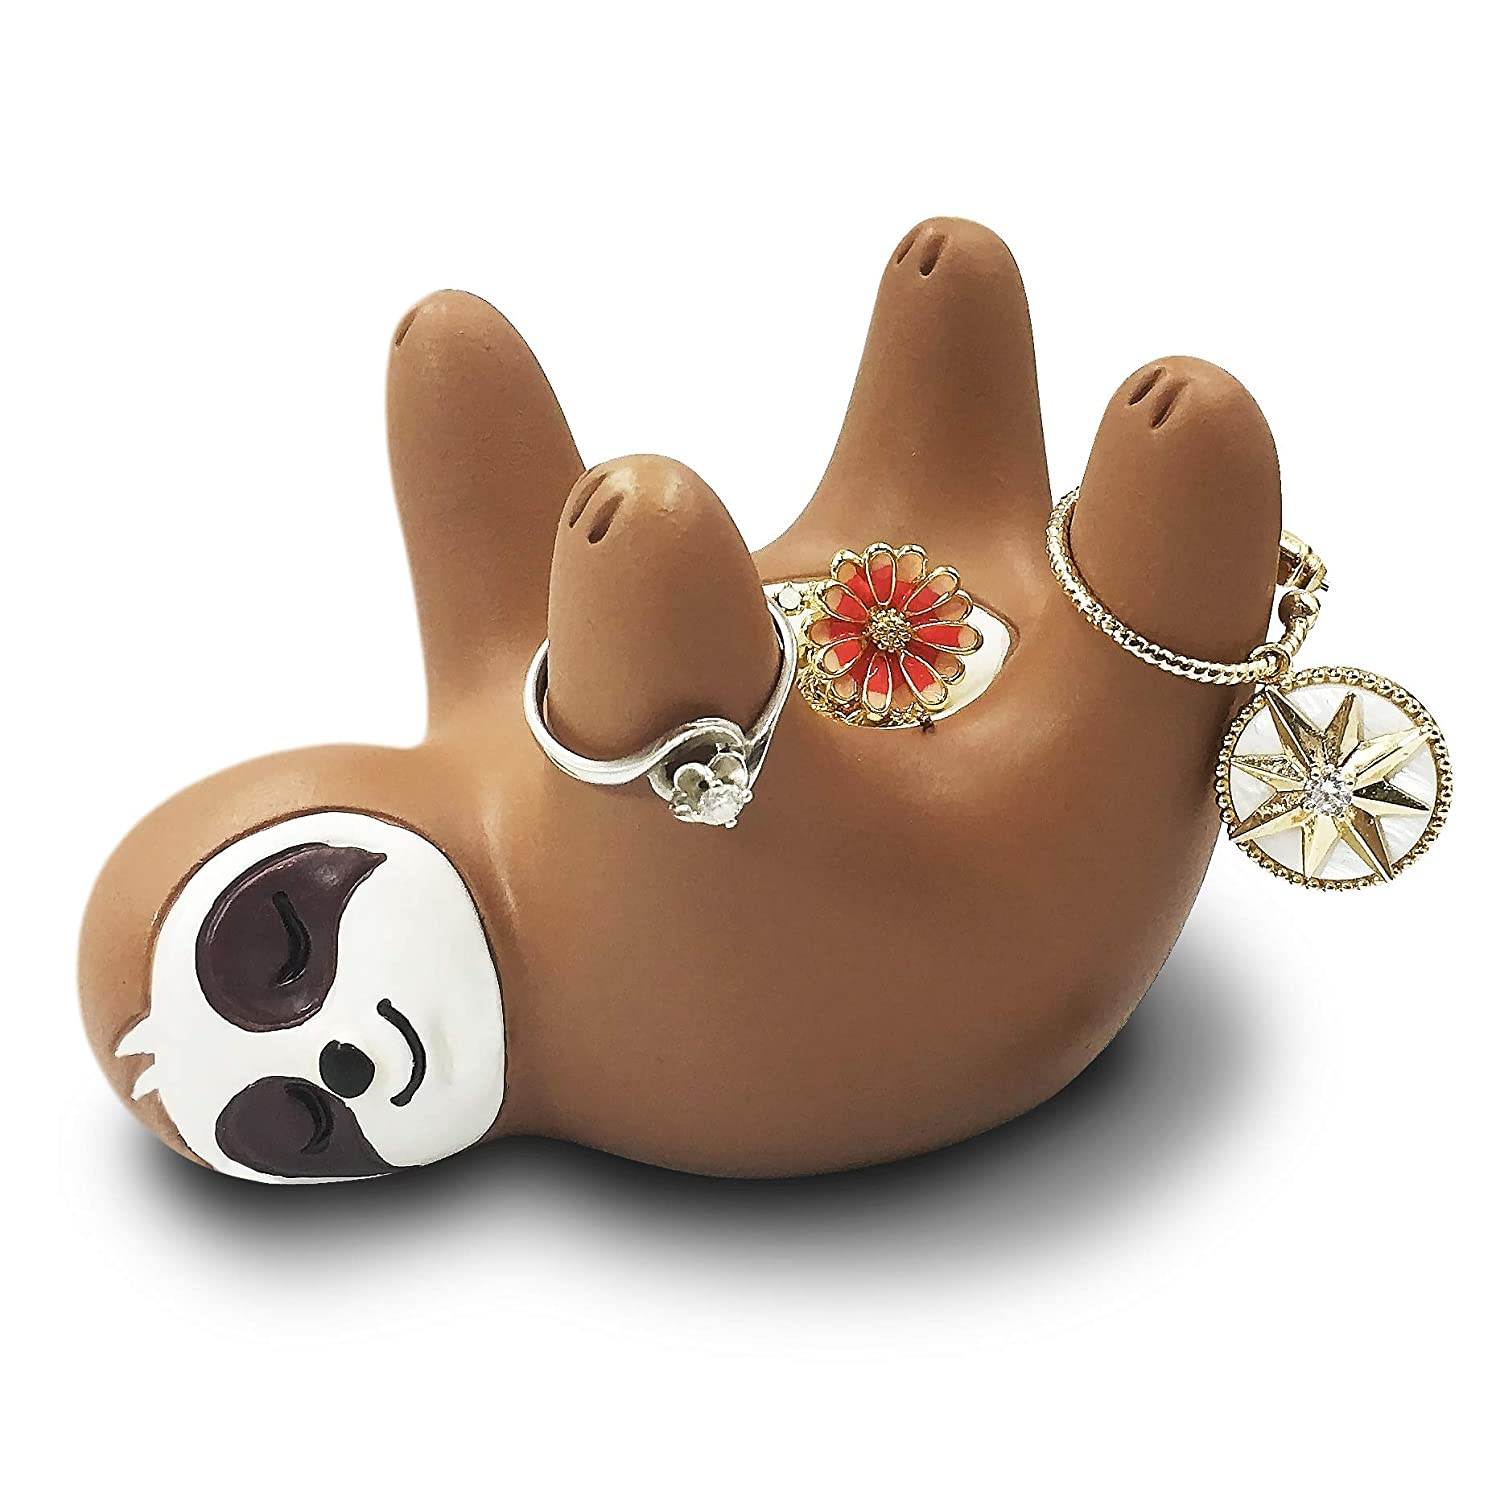 Cute Sloth Ring Holder, Funny Sloth Art Decoration Jewelry Holder Bowl/Stand-Earring/Necklaces Decor for Counter Desk Night Stand in Bathroom or Bedroom, Great Gifts for Kids Girls Girlfriend Friends